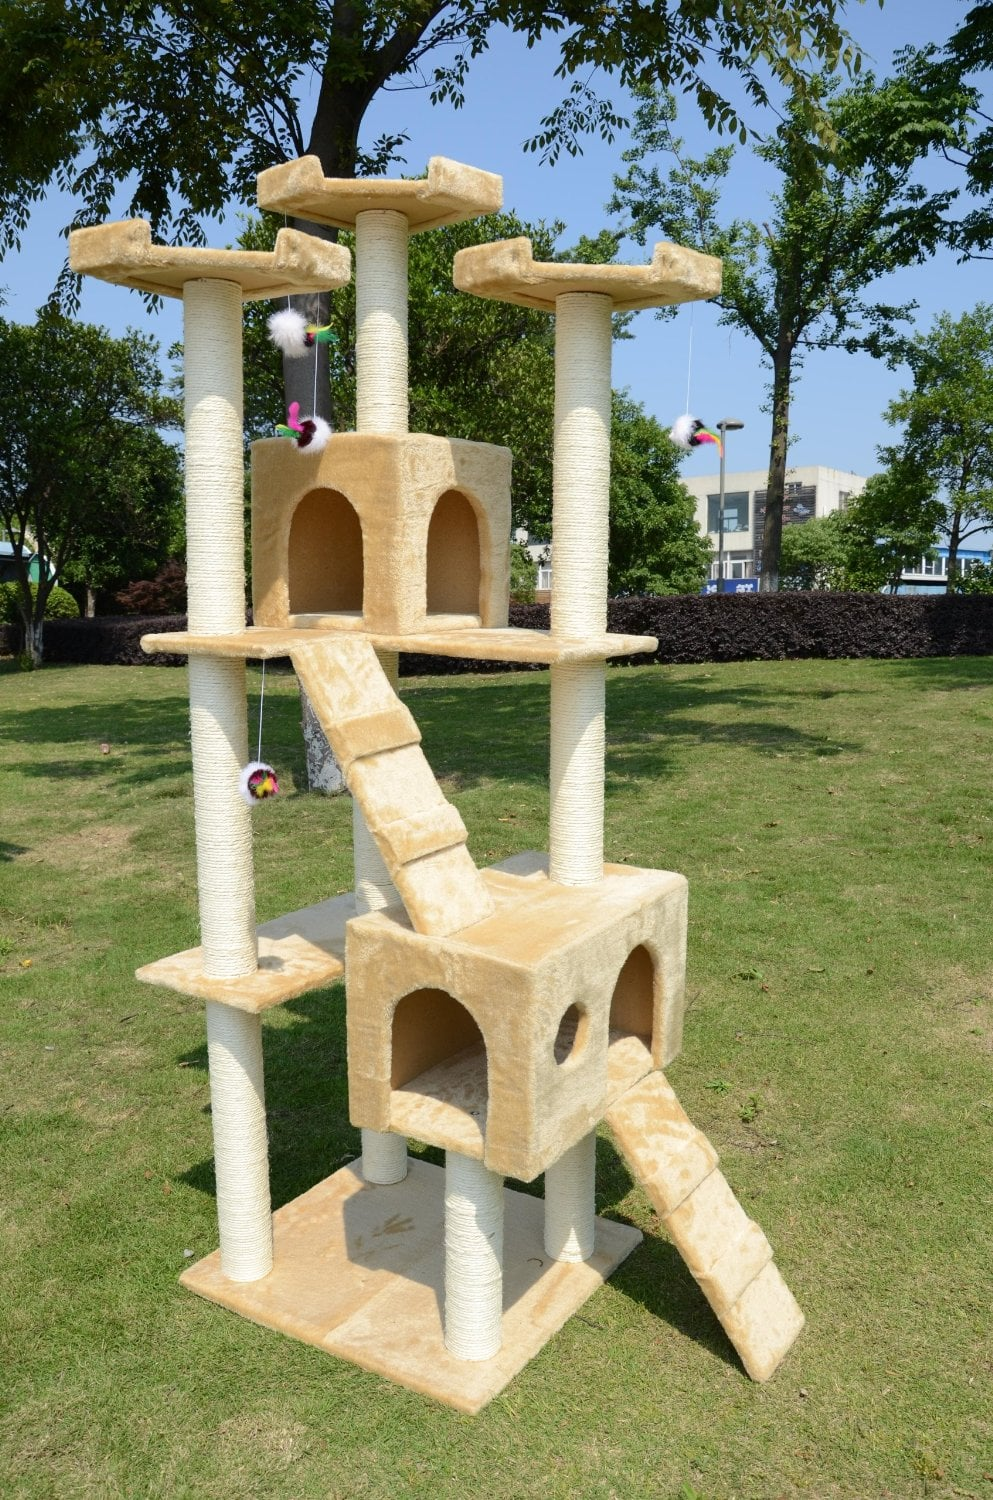 tree house for cats got more than one cat the pawhut cat tree 160 features multiple amazoncom furniture 62quot industrial wood